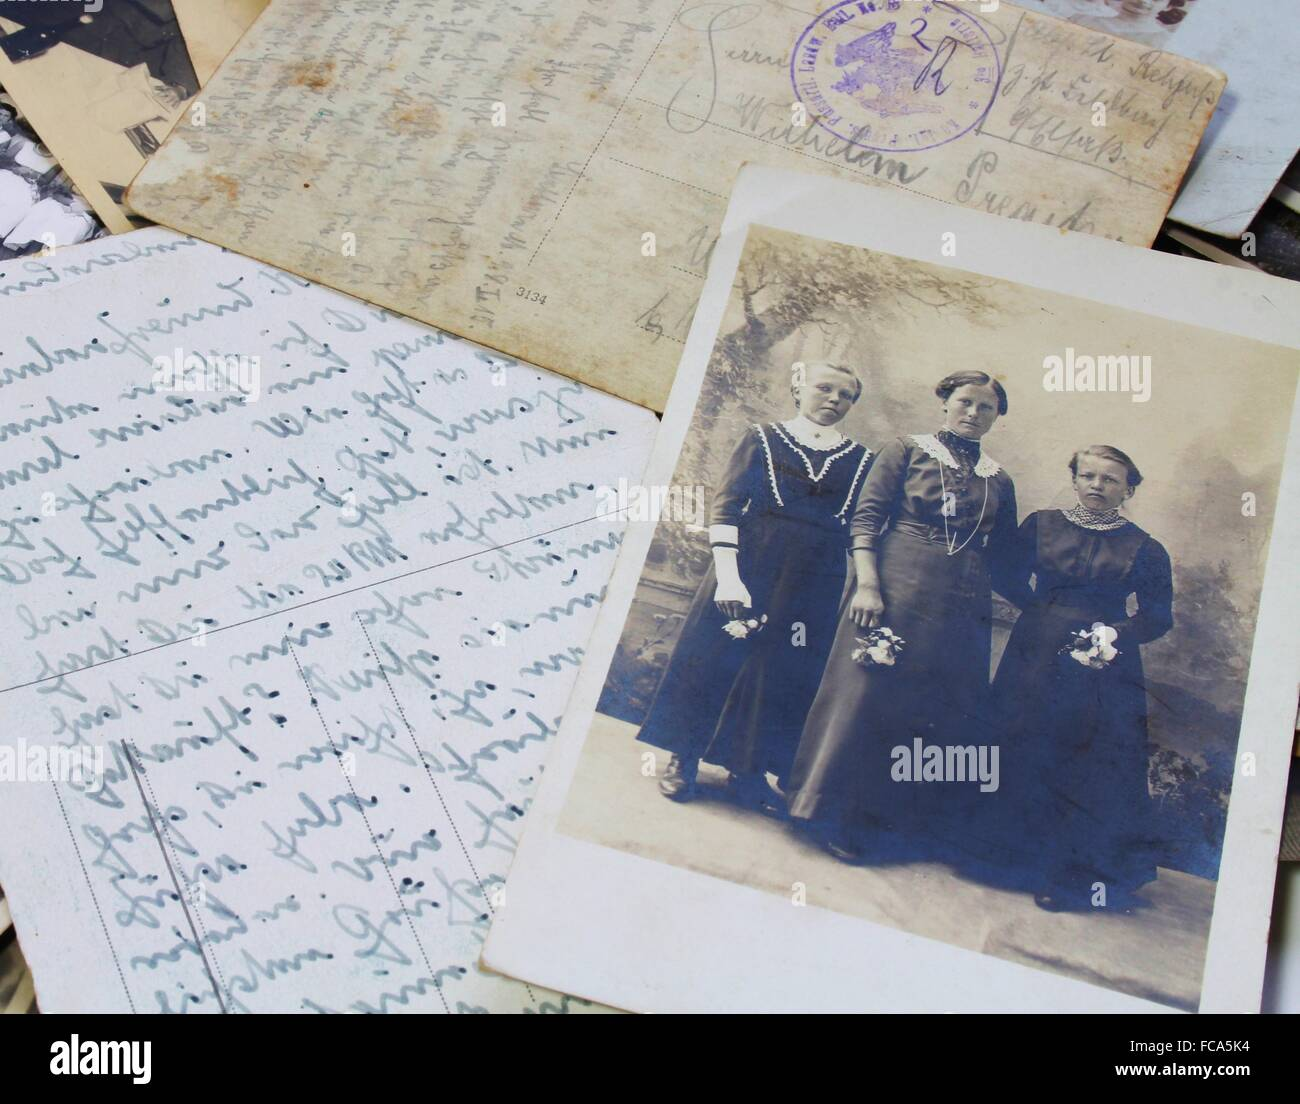 Historical photos with letters - Stock Image